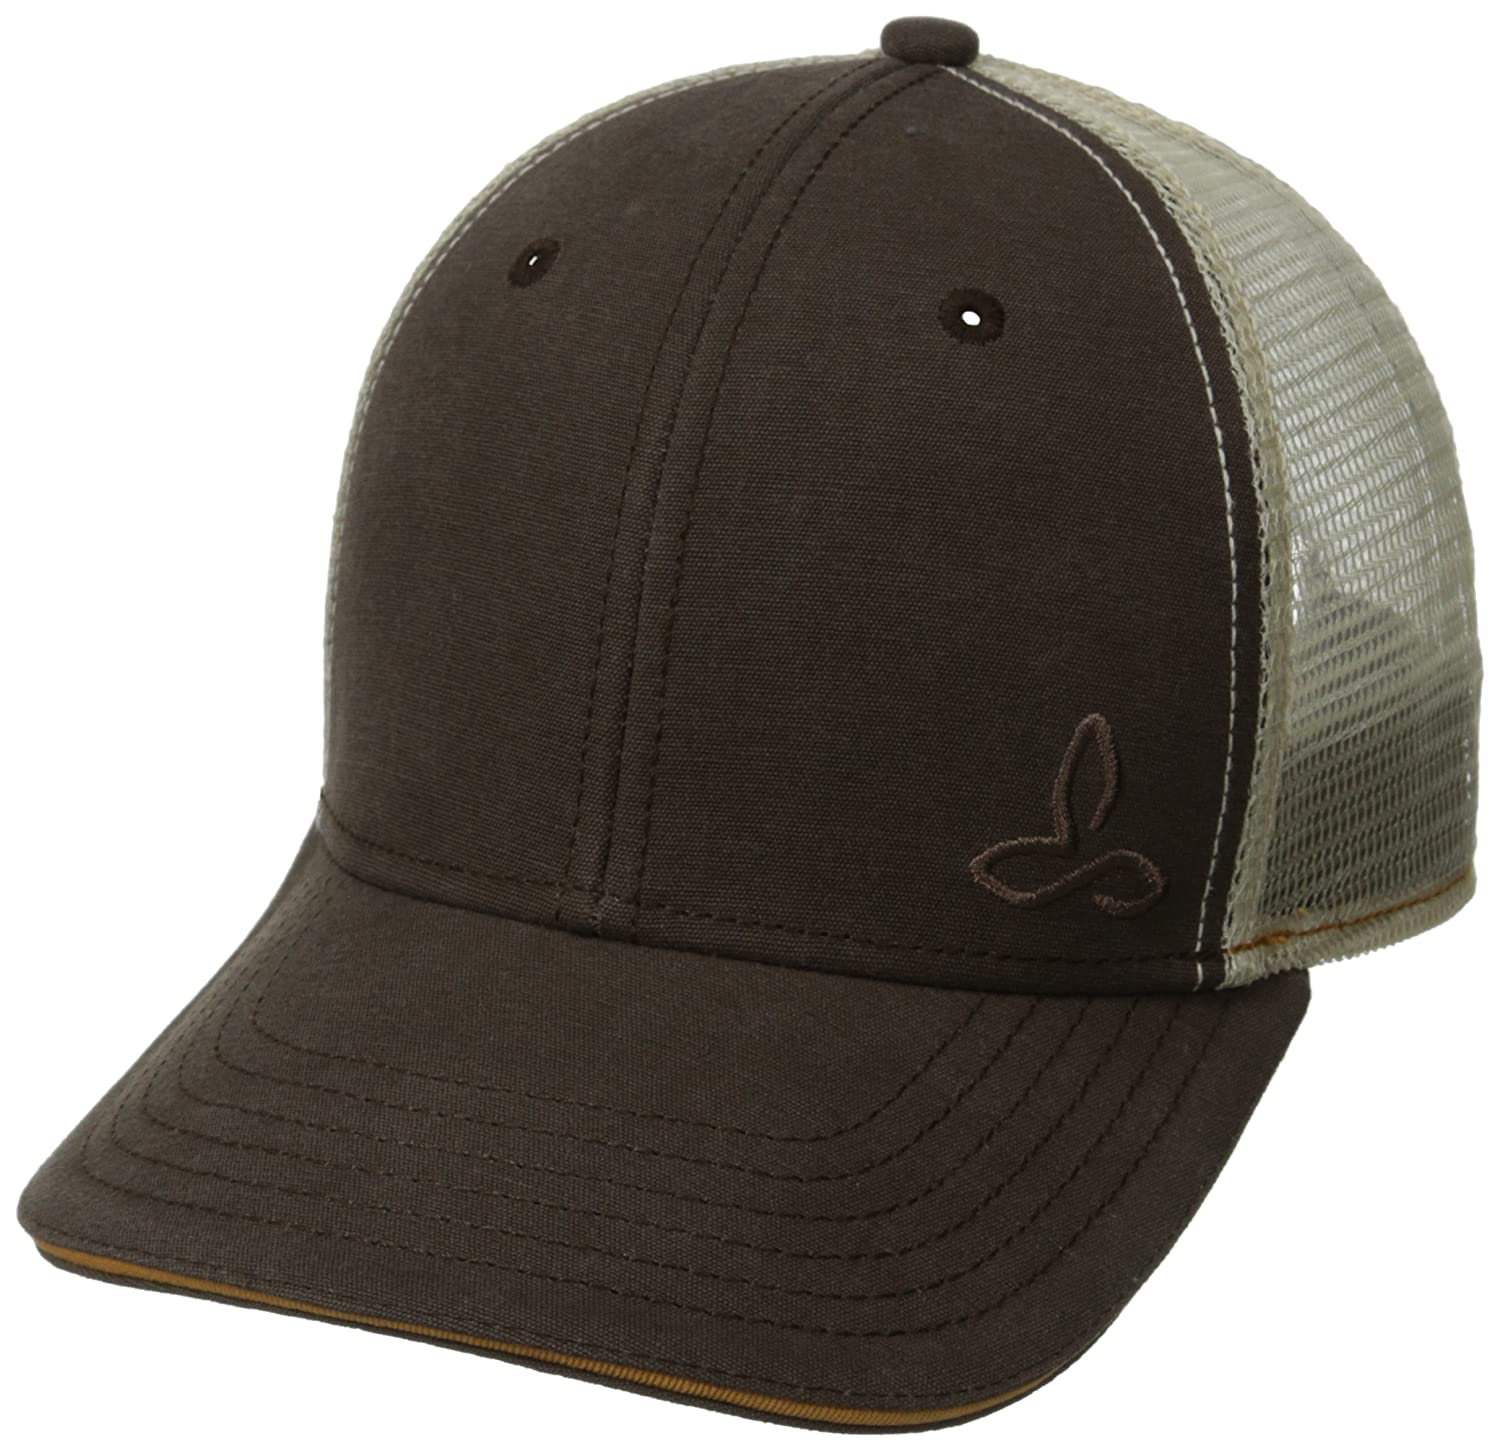 Prana Living Men's Karma Trucker Hat, One Size, Brown U5KARM314